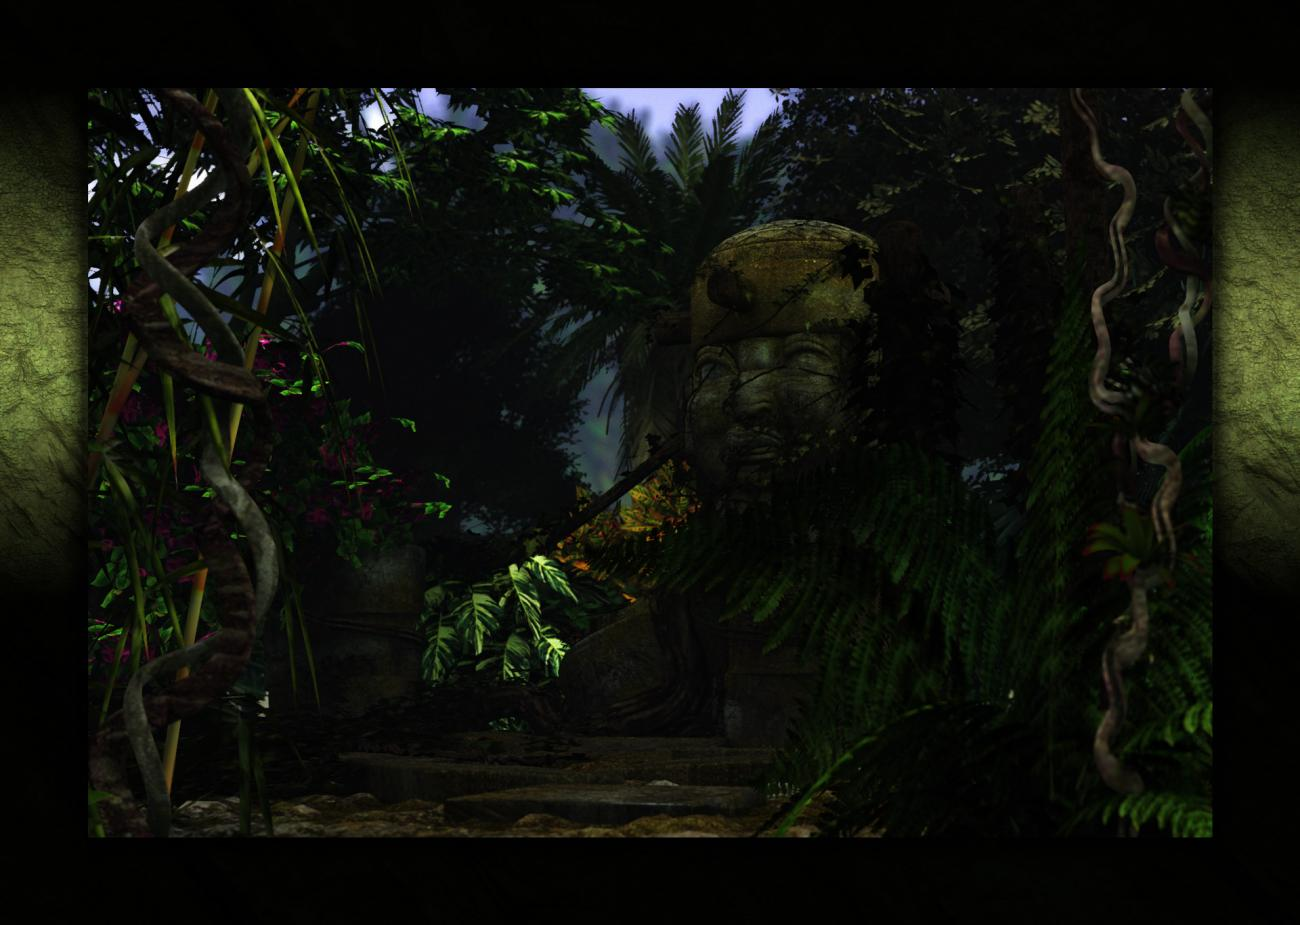 The Head in the Jungle by nfredman